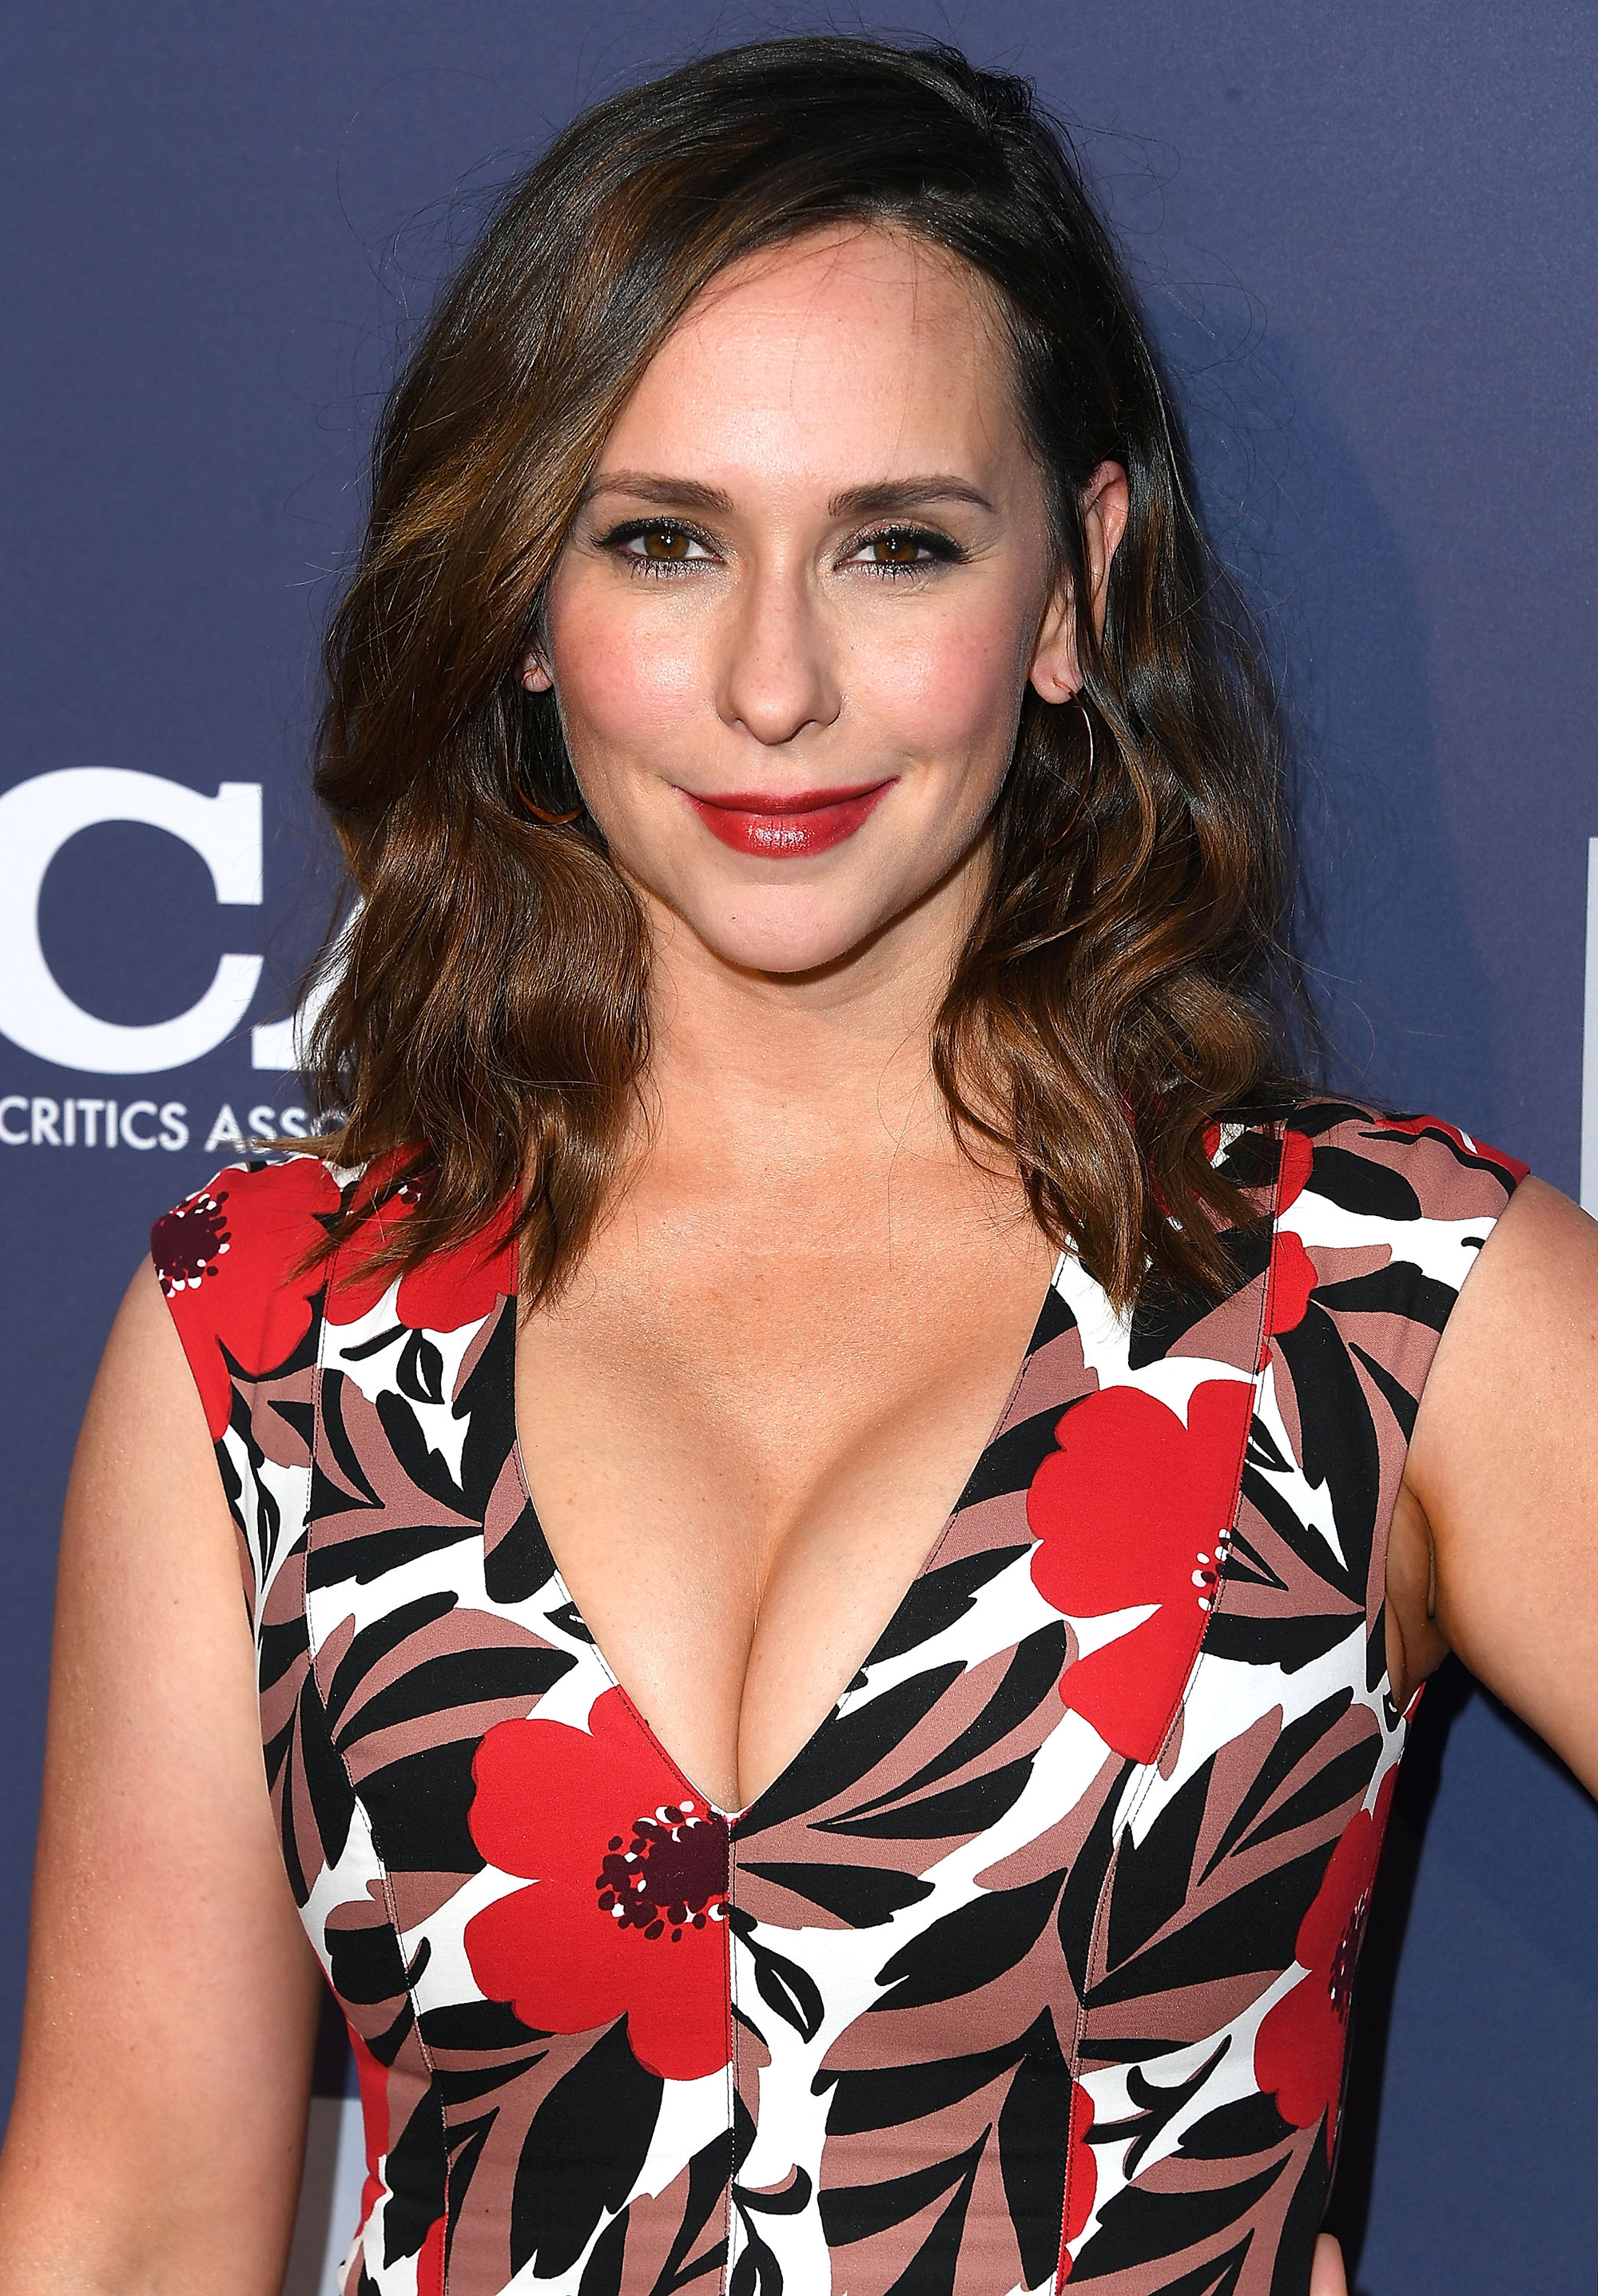 The Stars Joining Fall TV - Making her return to TV for the first time in three years, Jennifer Love Hewitt will take over as the new 911 operator, following the departure of Connie Britton, on Fox's 9-1-1 . Hewitt takes on the role of Buck's sister Maddie who moved to town to get away from an abusive ex.